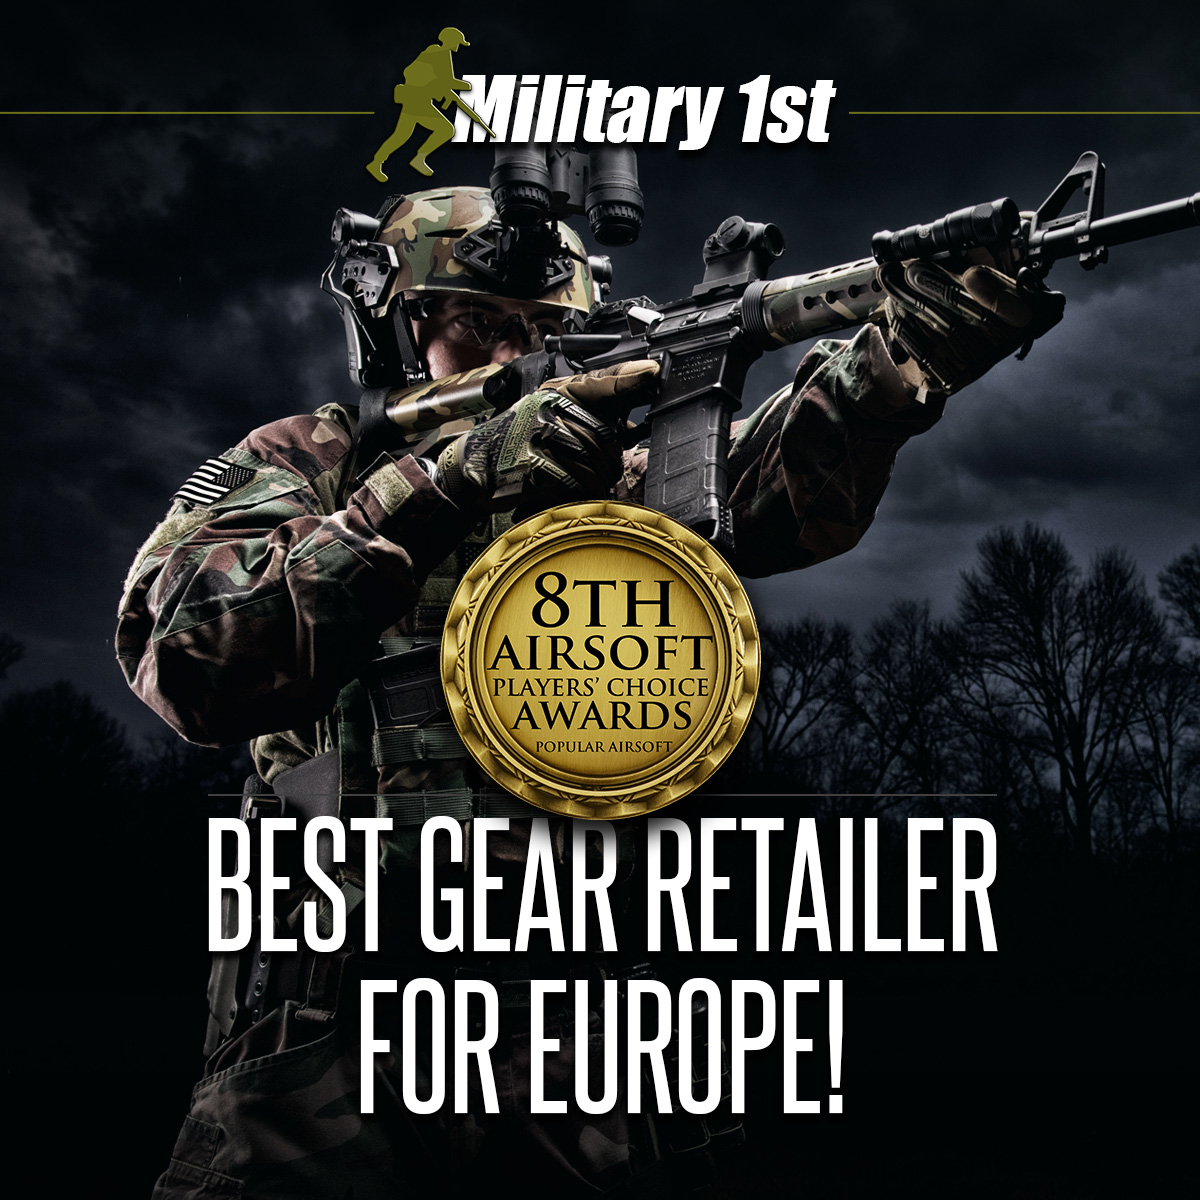 8th Airsoft Players Choice Awards - Results